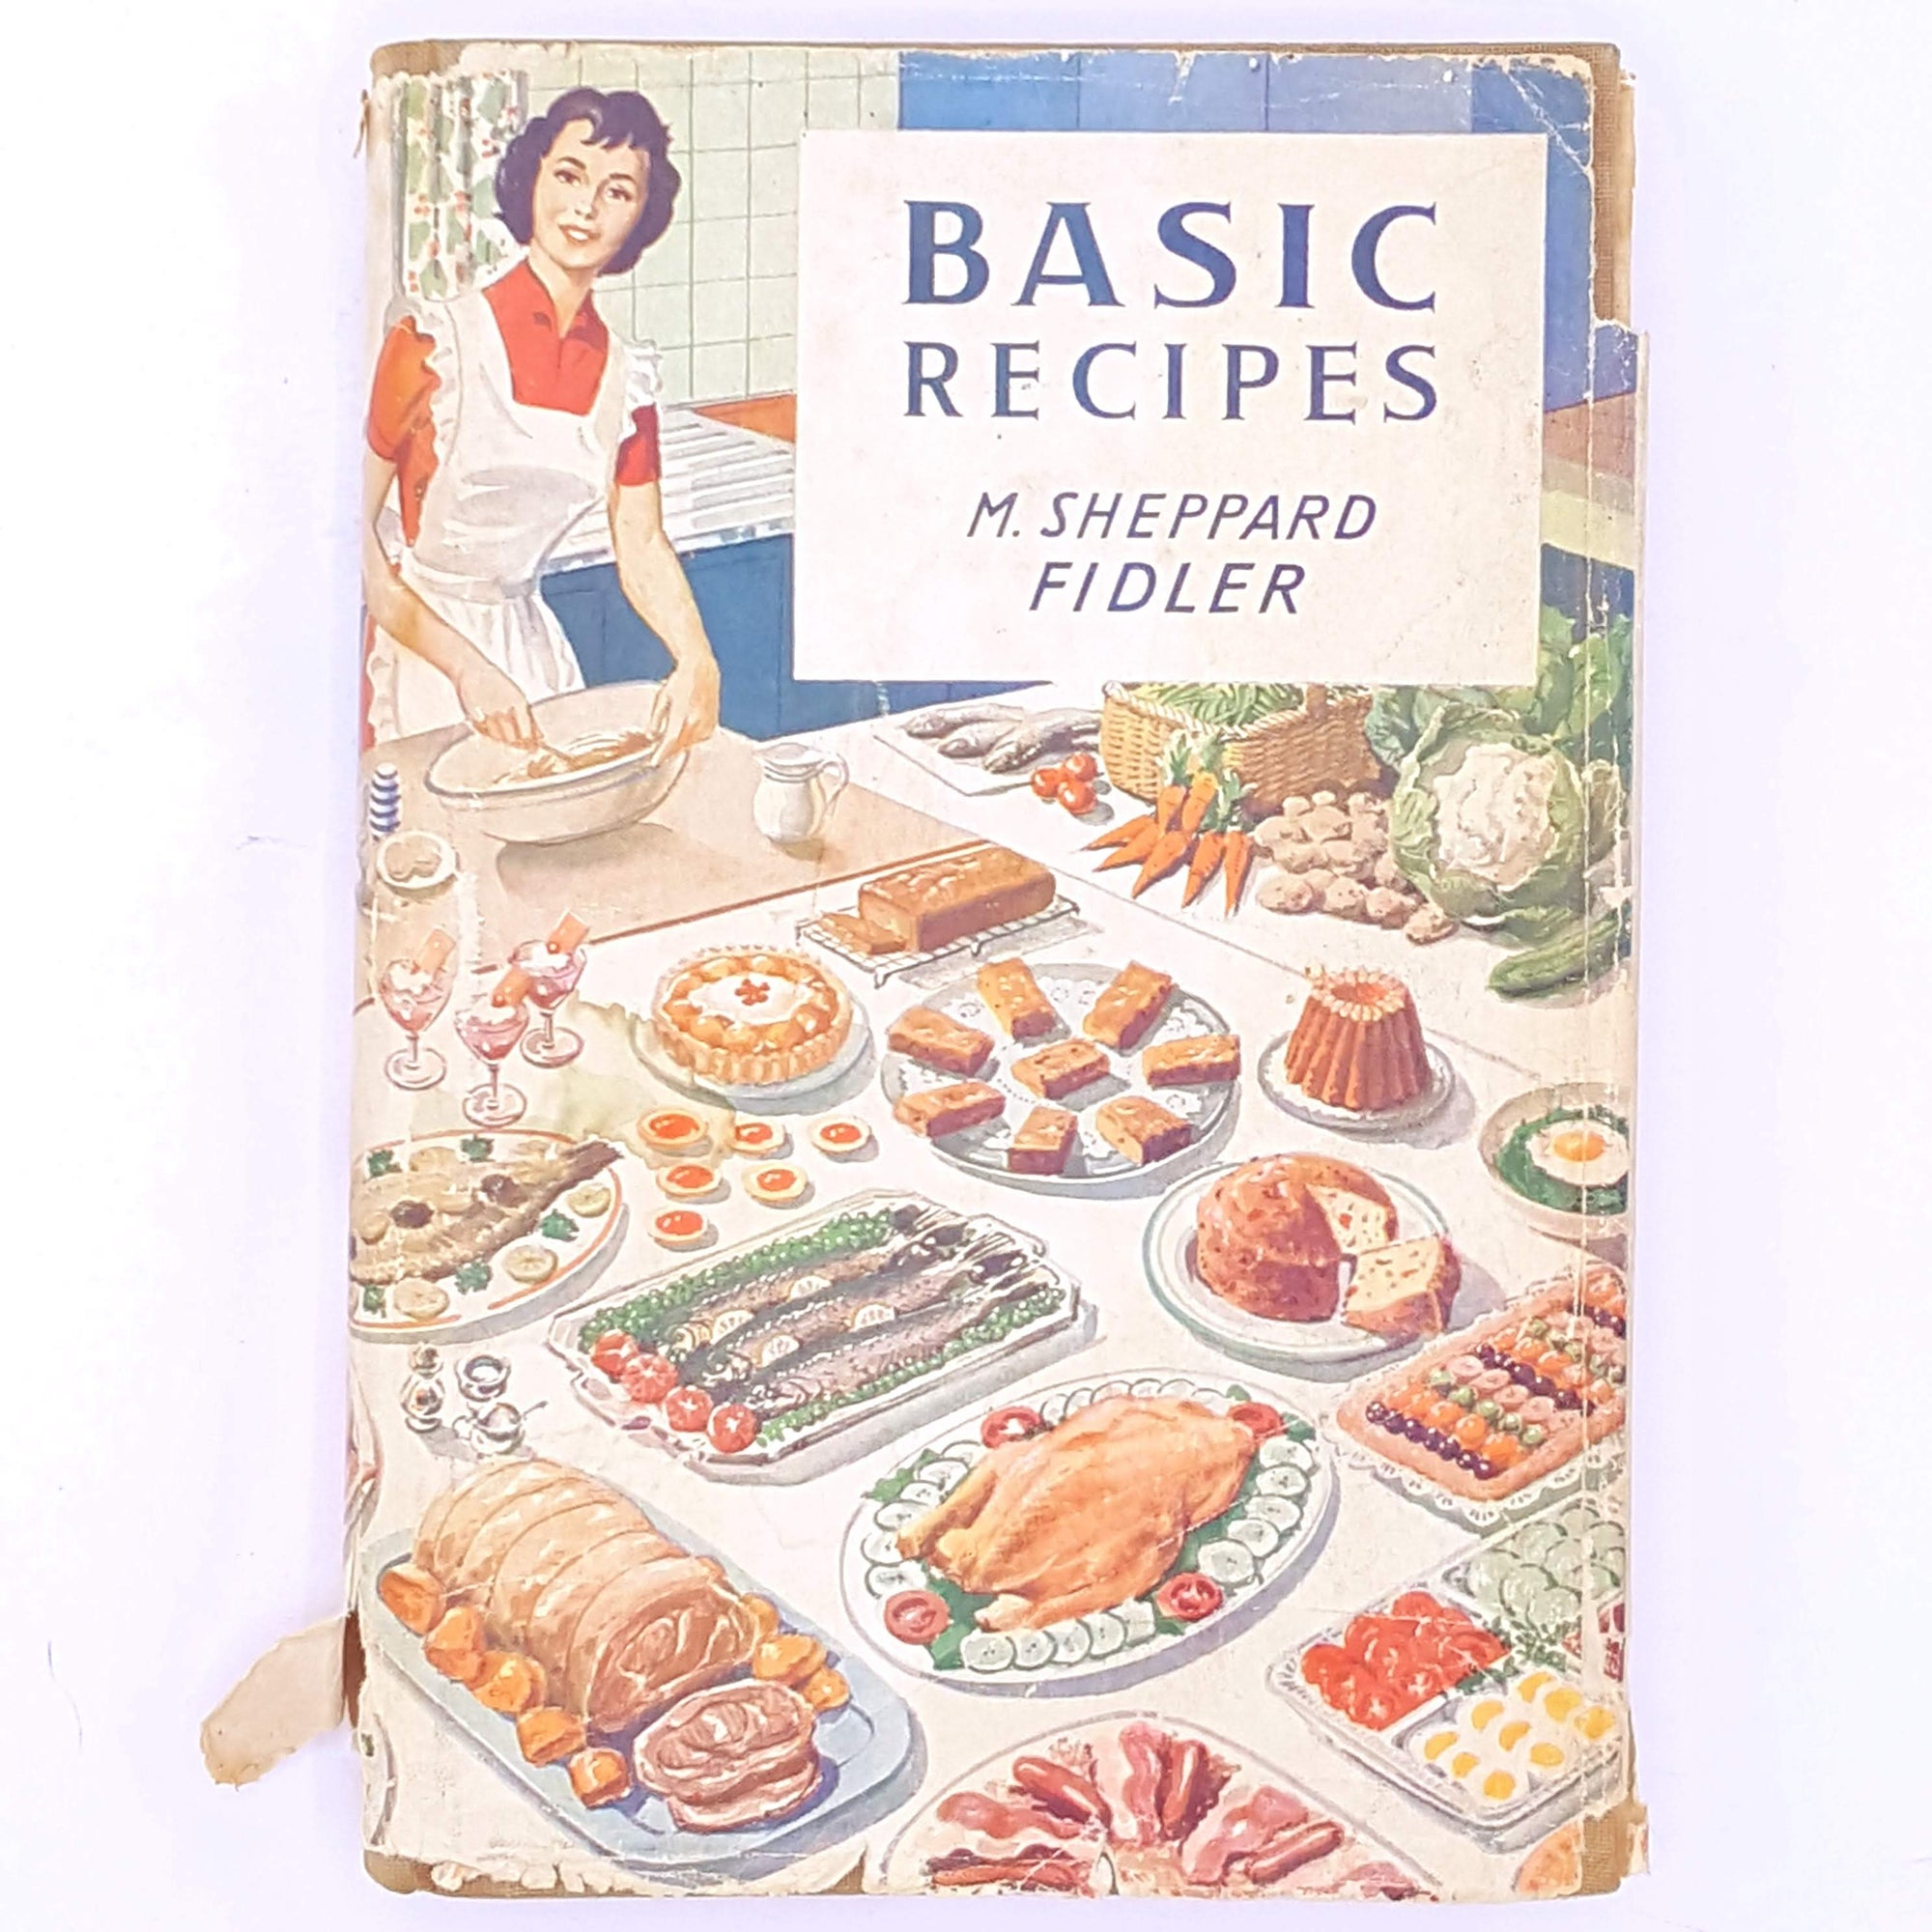 Basic Recipes, M.Sheppard Fidler